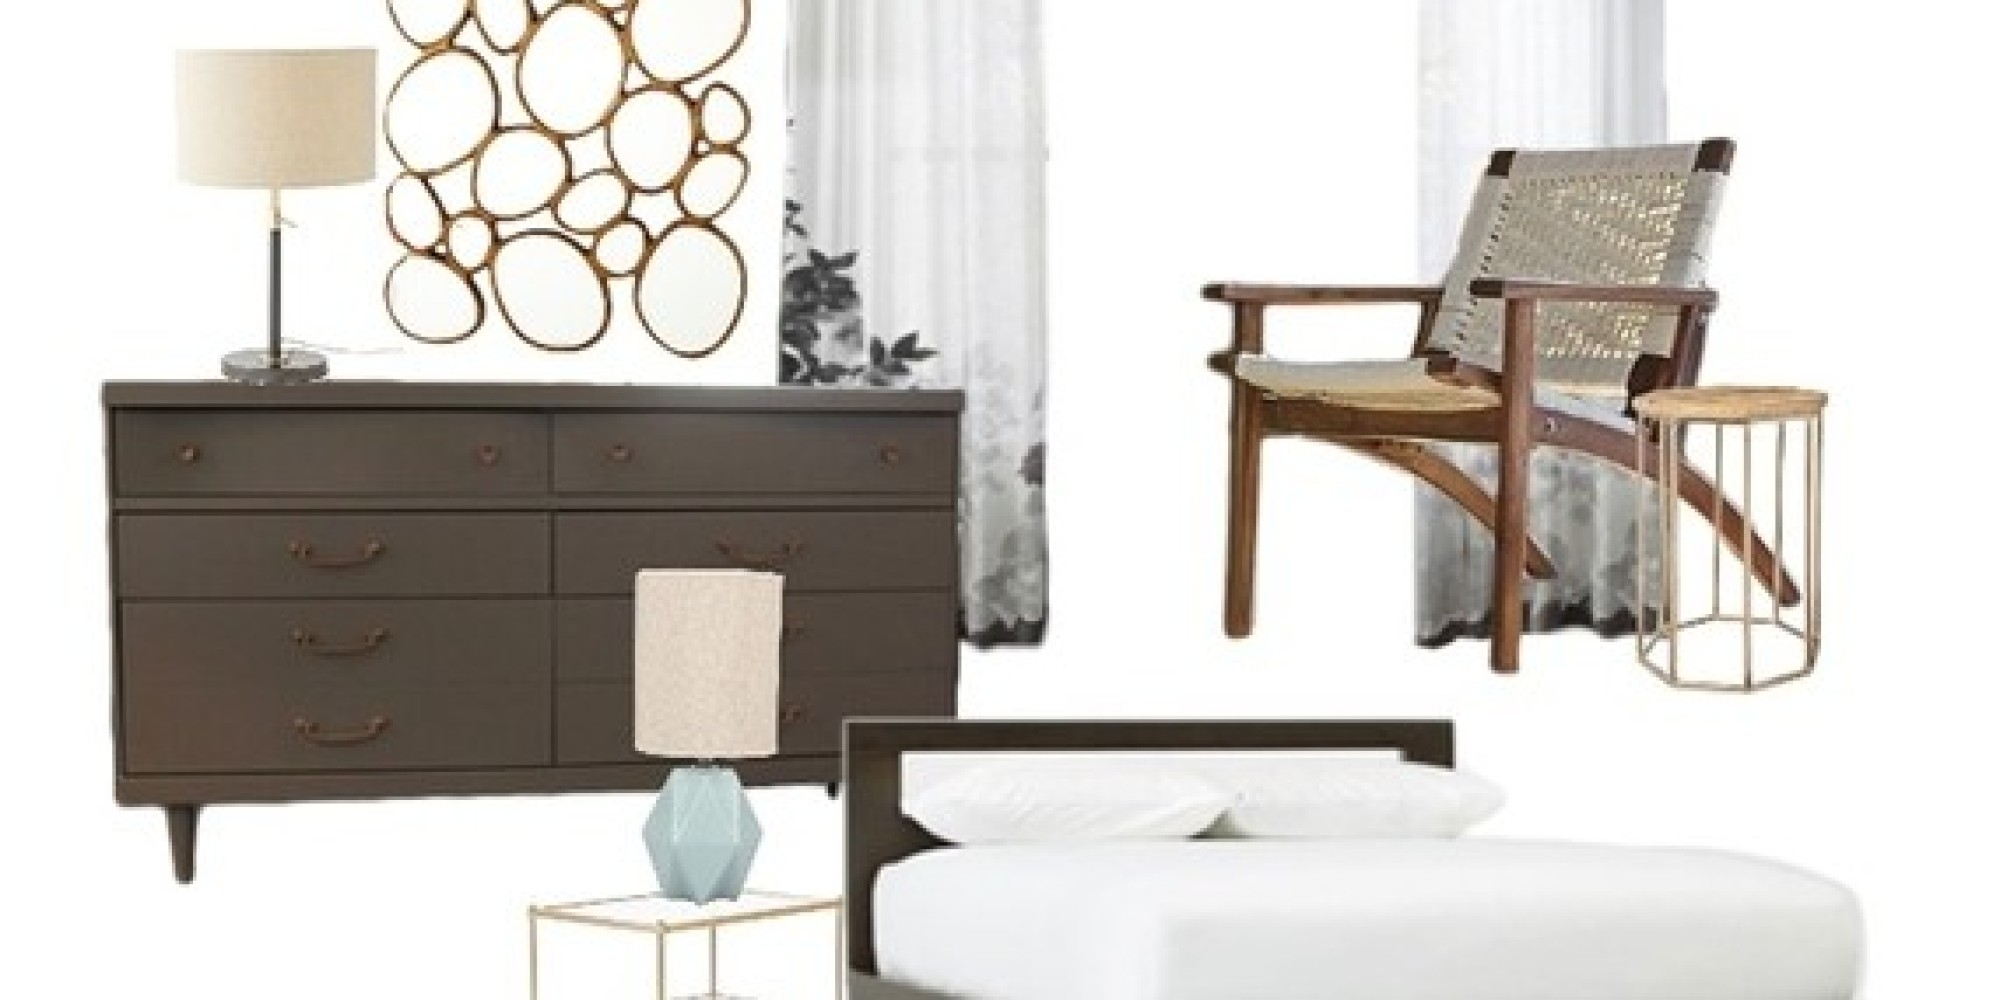 stylish bedroom ideas from house of hipster's online interior